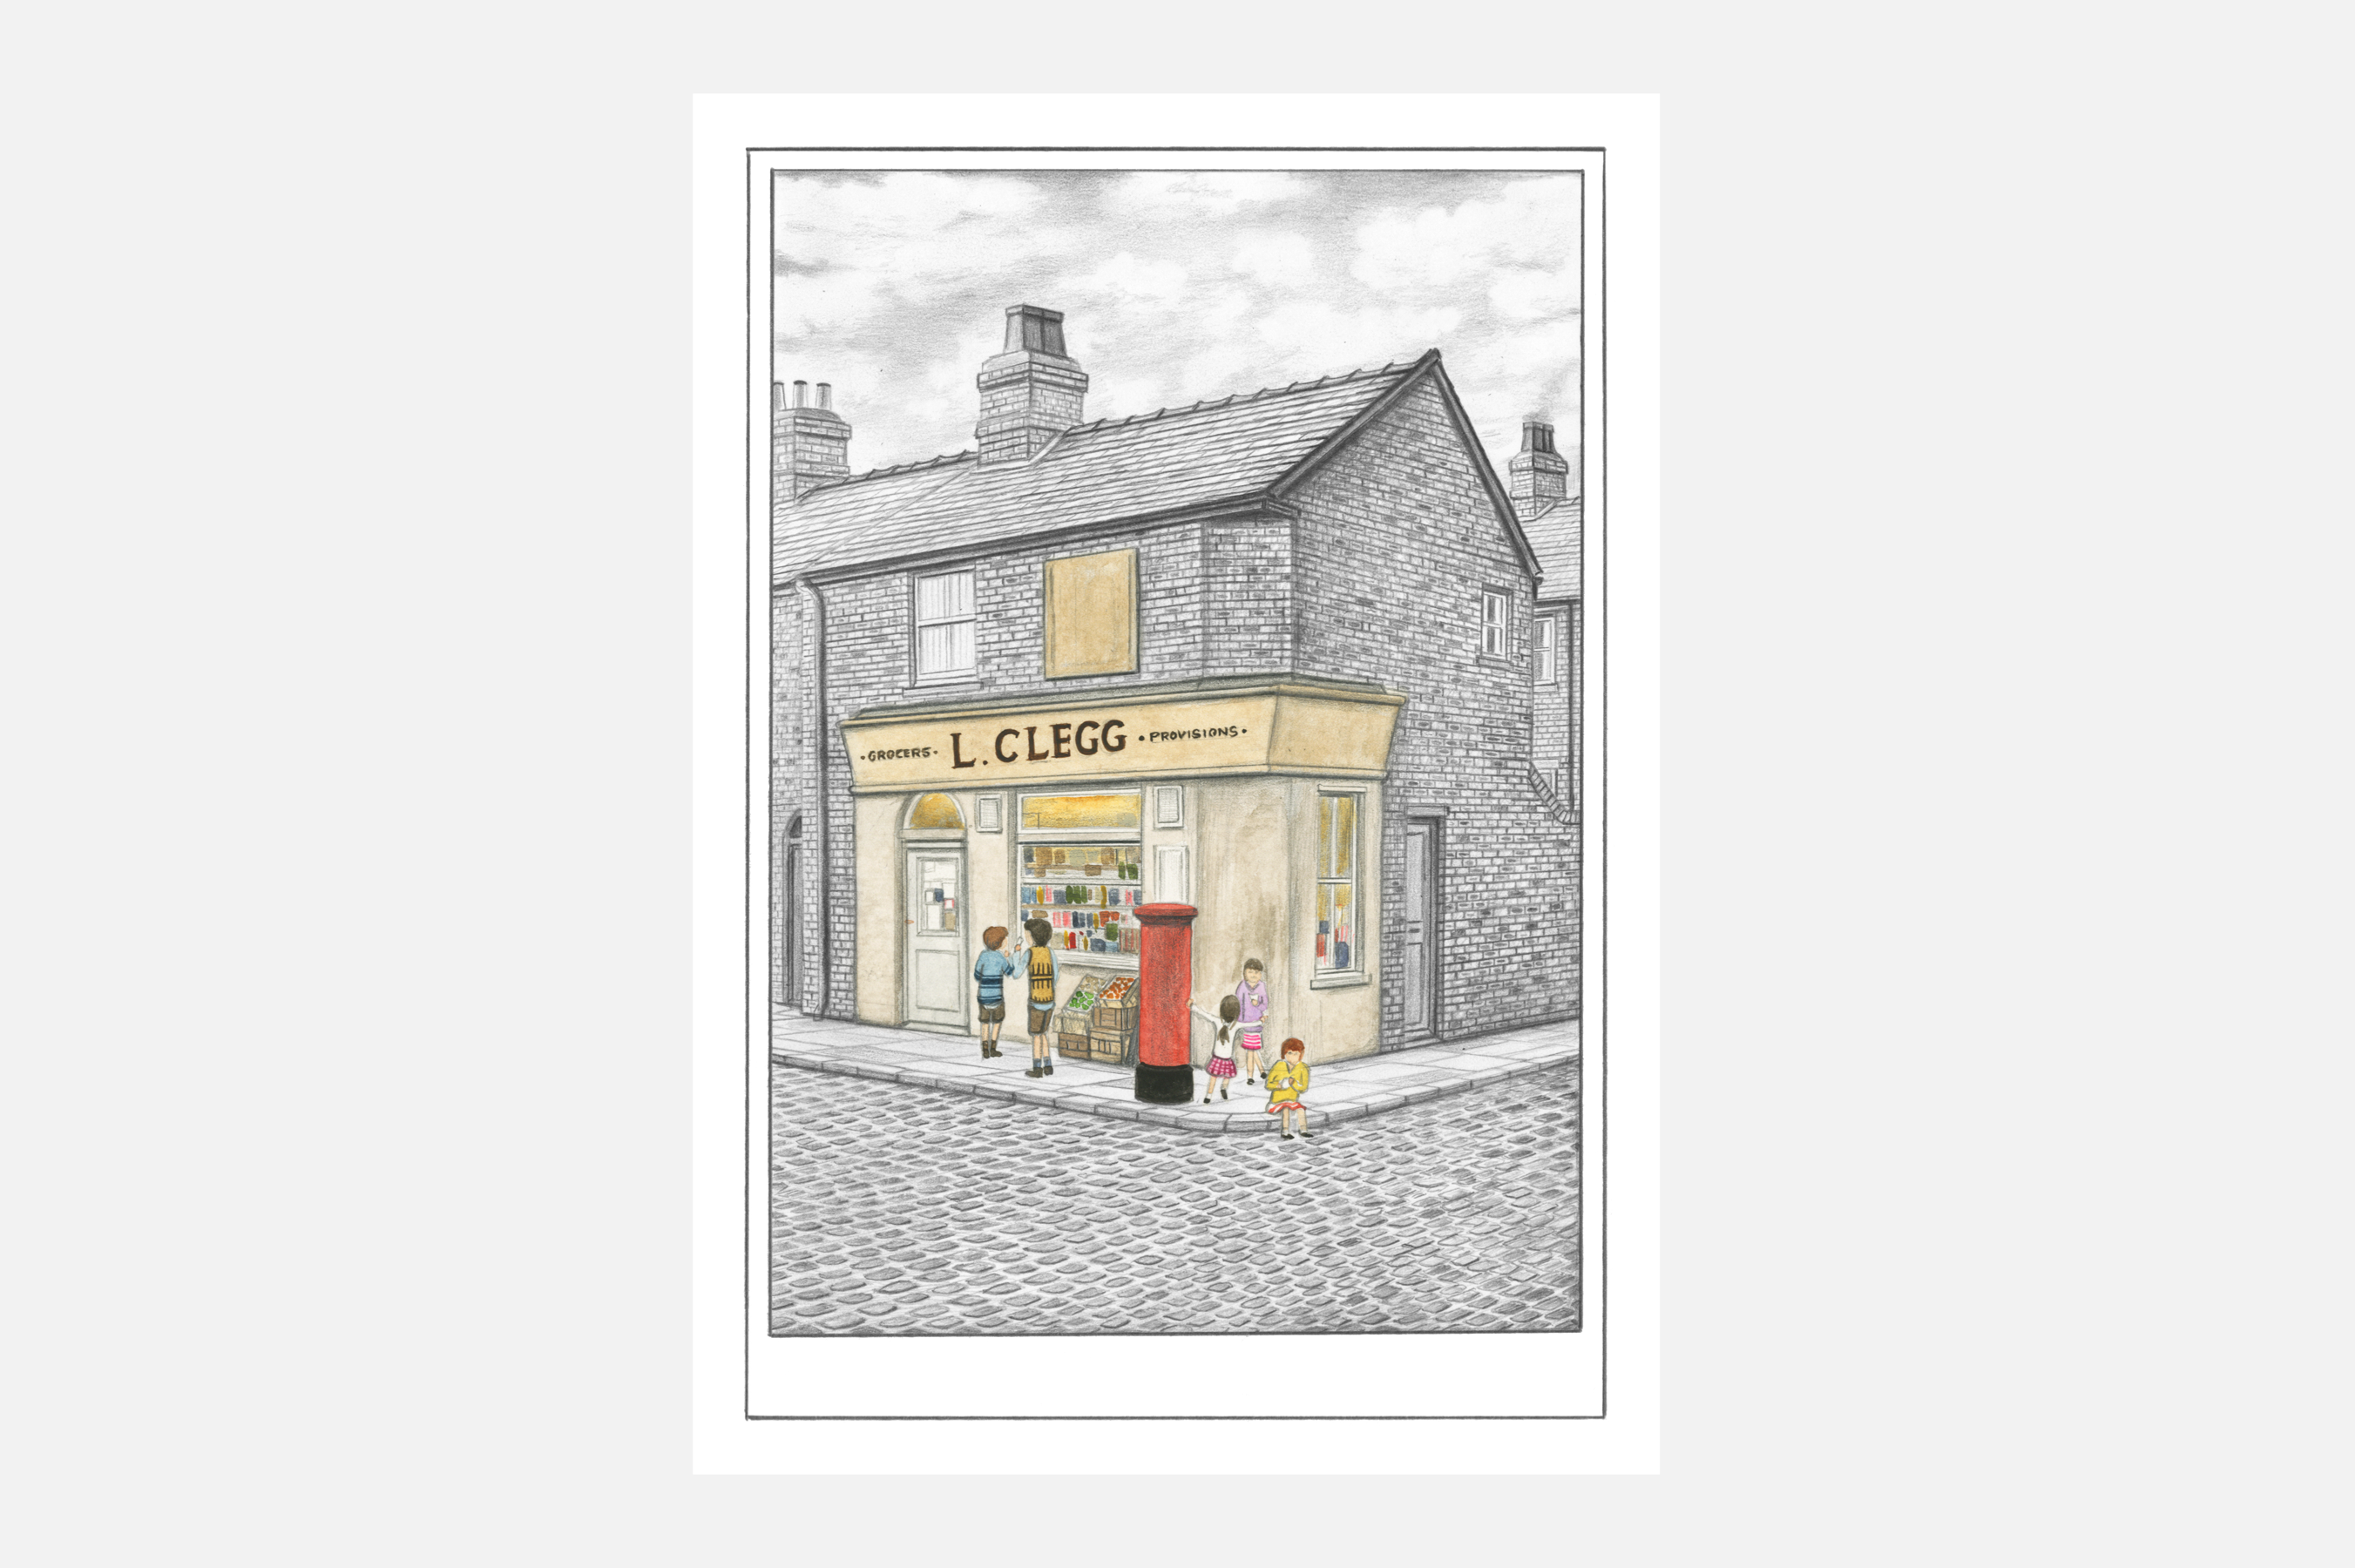 'Our kid's Up Shop' By Leigh Lambert